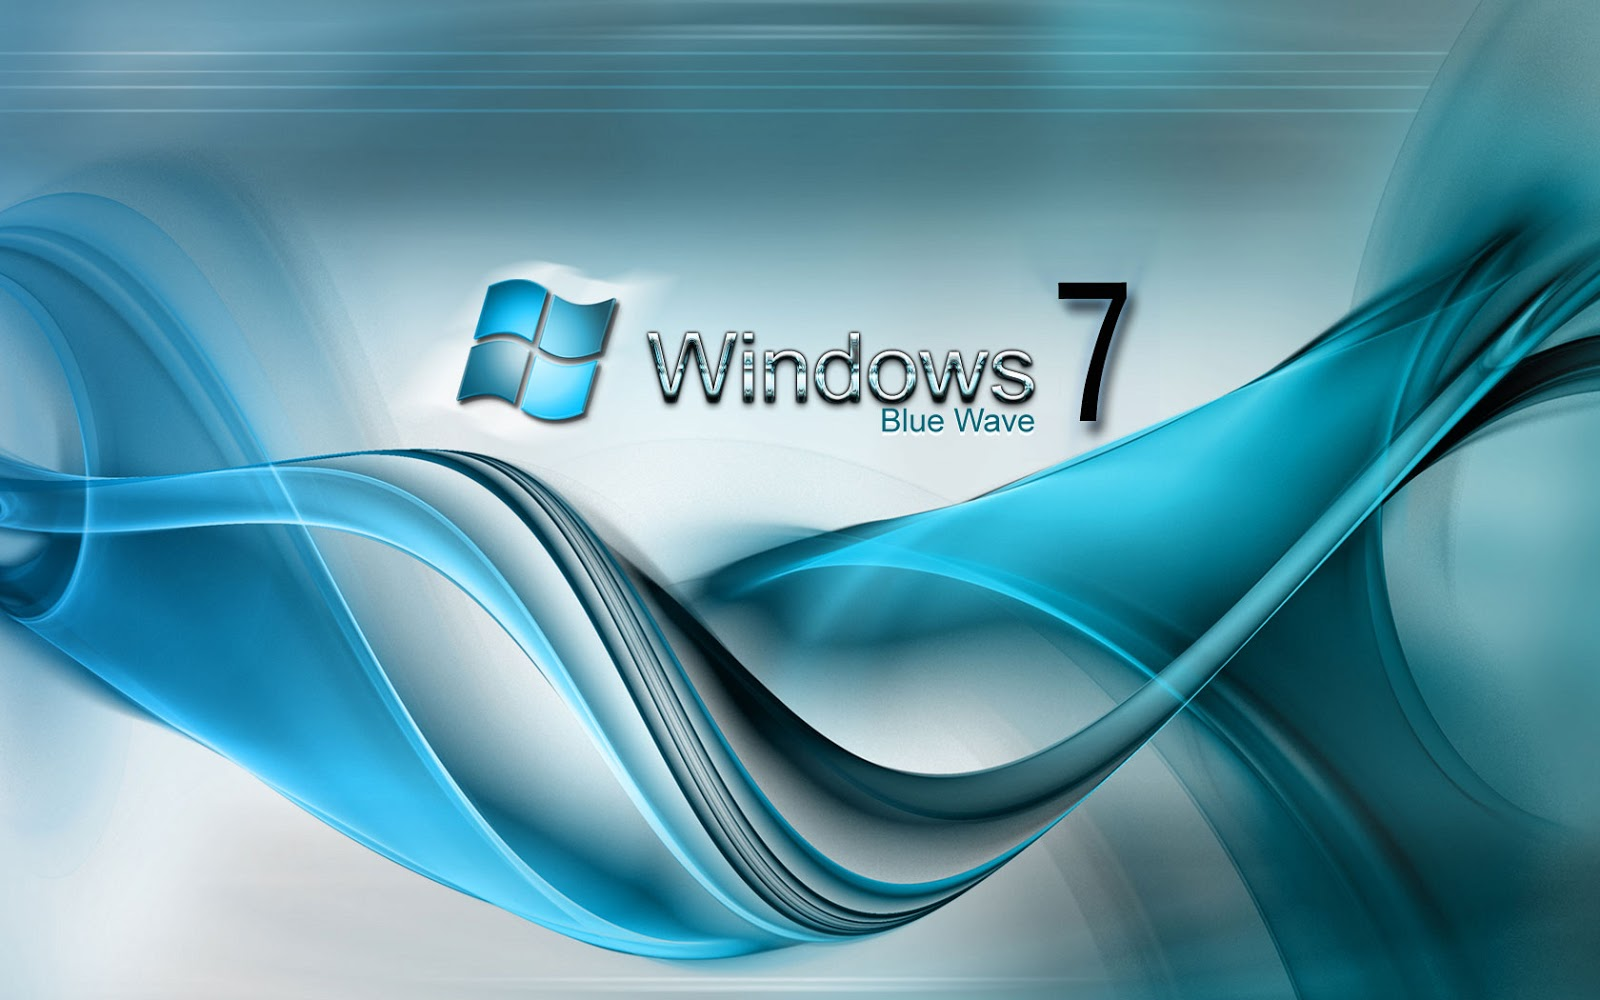 Hd 3d wallpapers for windows 7 for Window 3d wallpaper